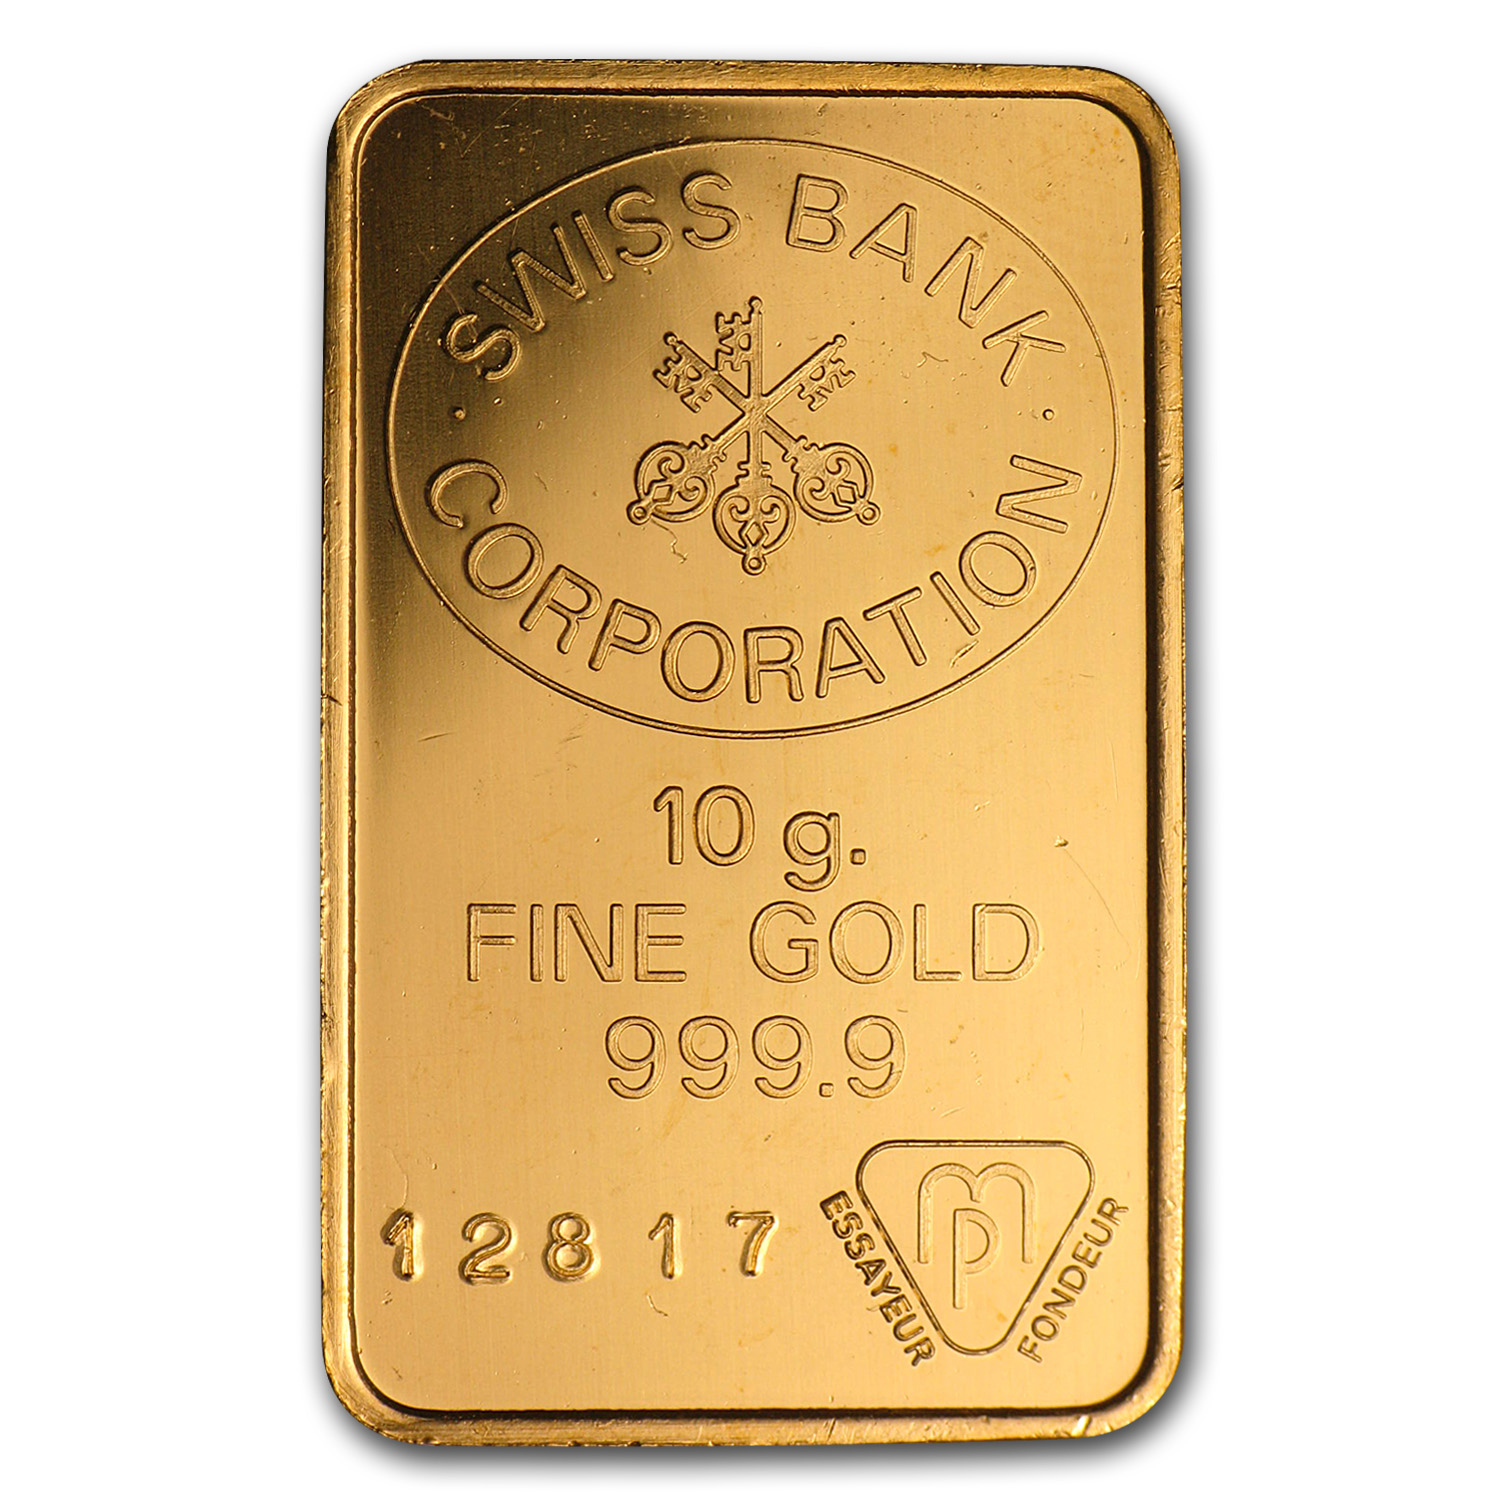 10 gram Gold Bars - Swiss Bank Corporation